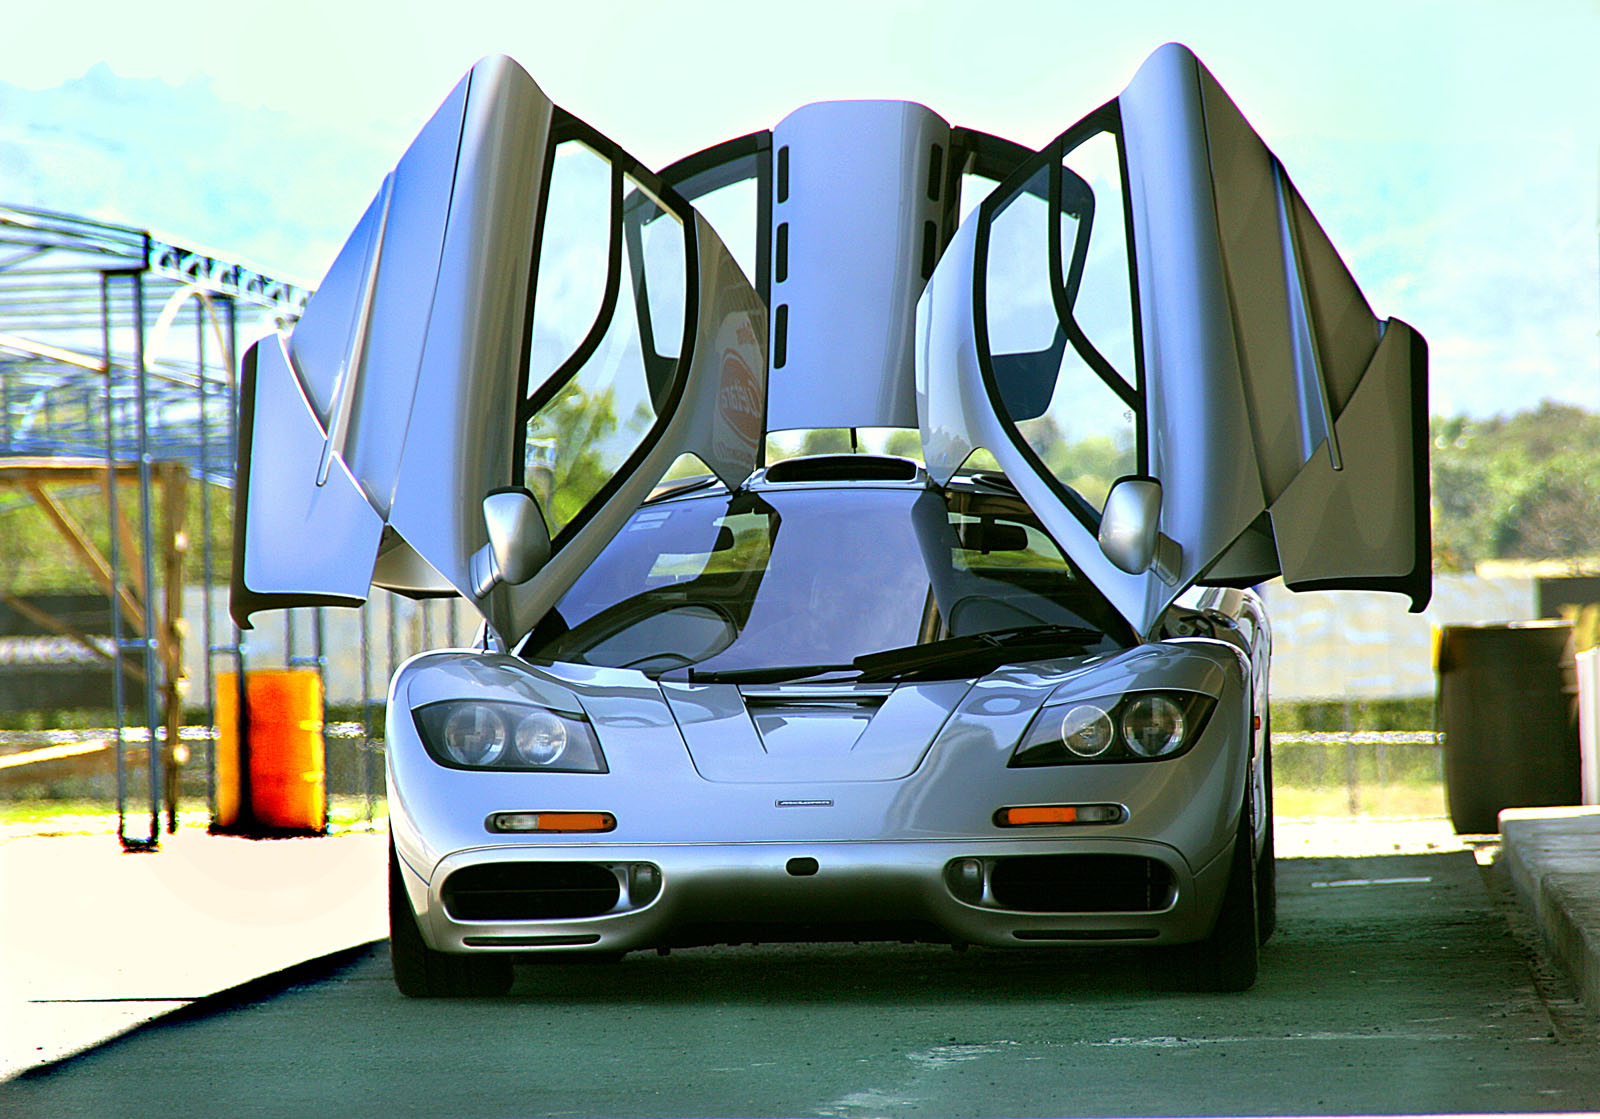 mclaren f1 wallpaper and background image | 1600x1119 | id:98515